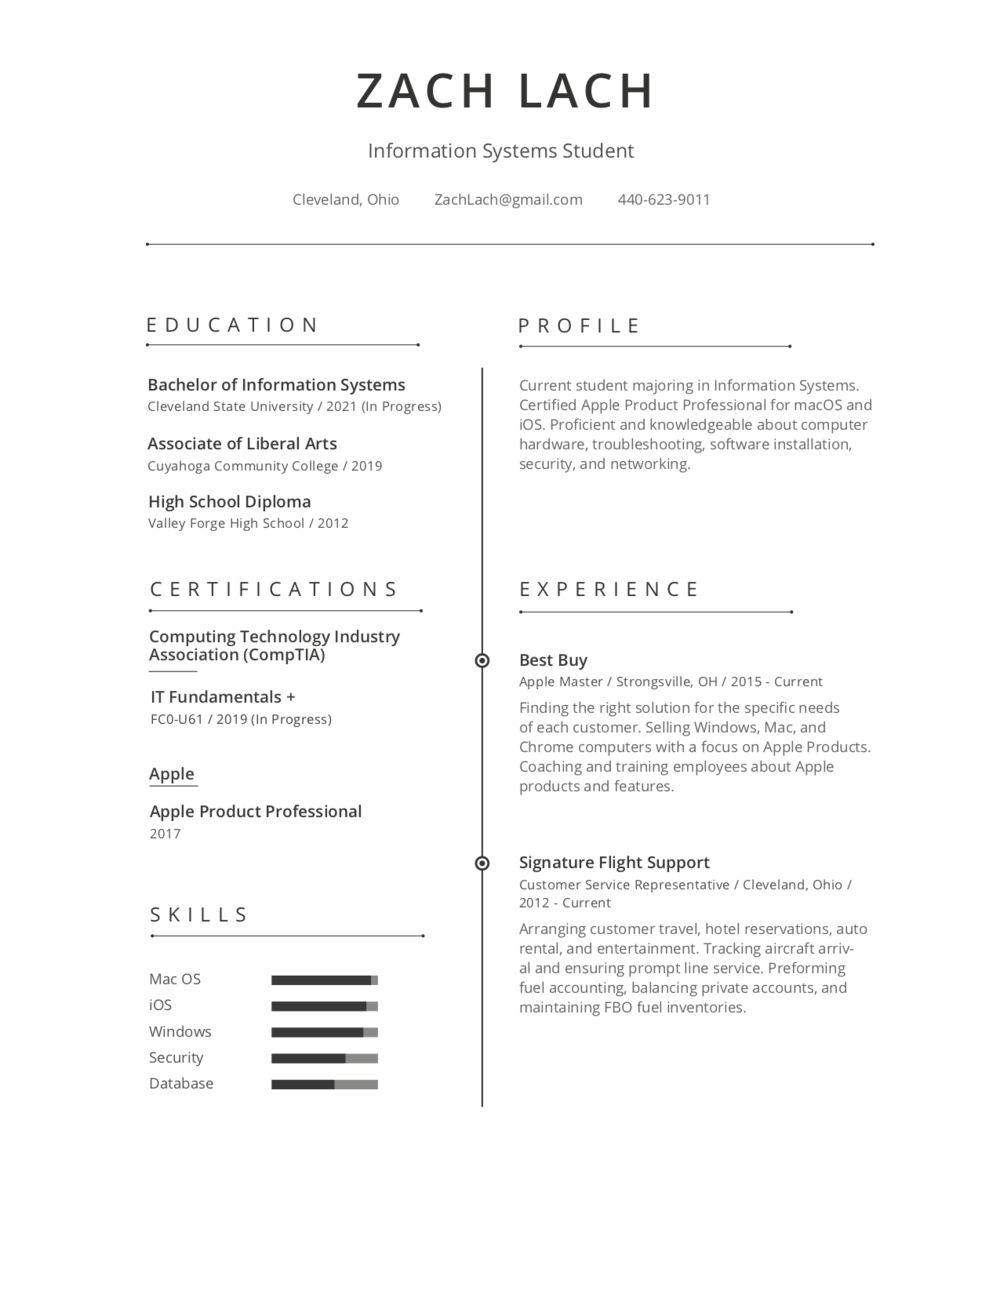 Zach Lach - Resume - 2019.png